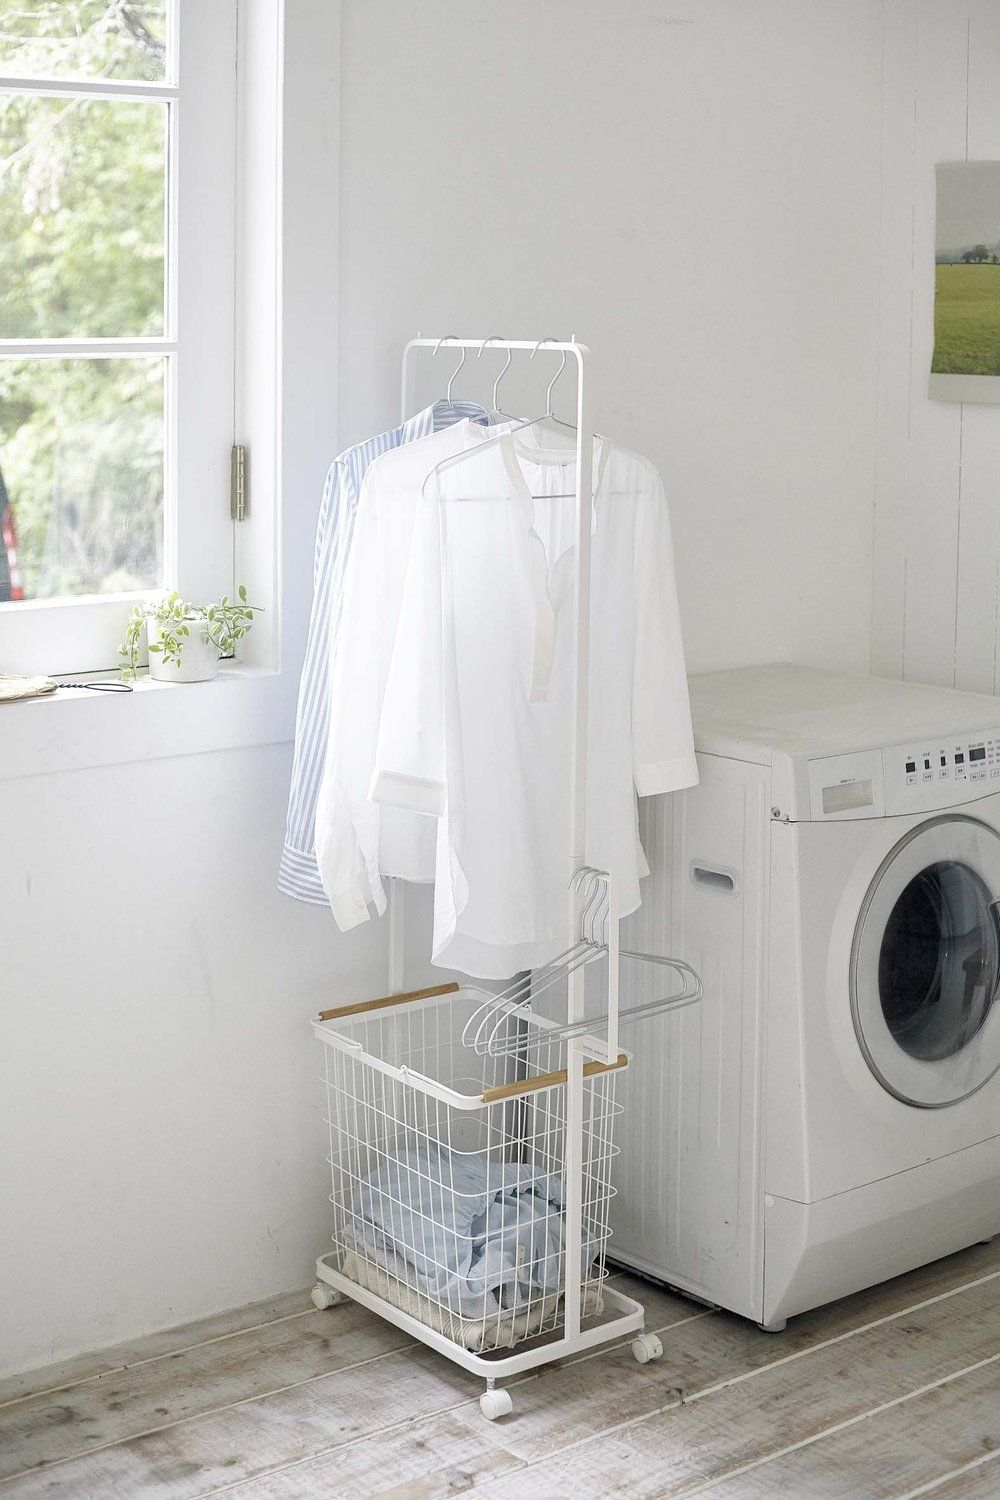 Tall Wagon For Tosca Laundry Basket In 2020 Laundry Basket